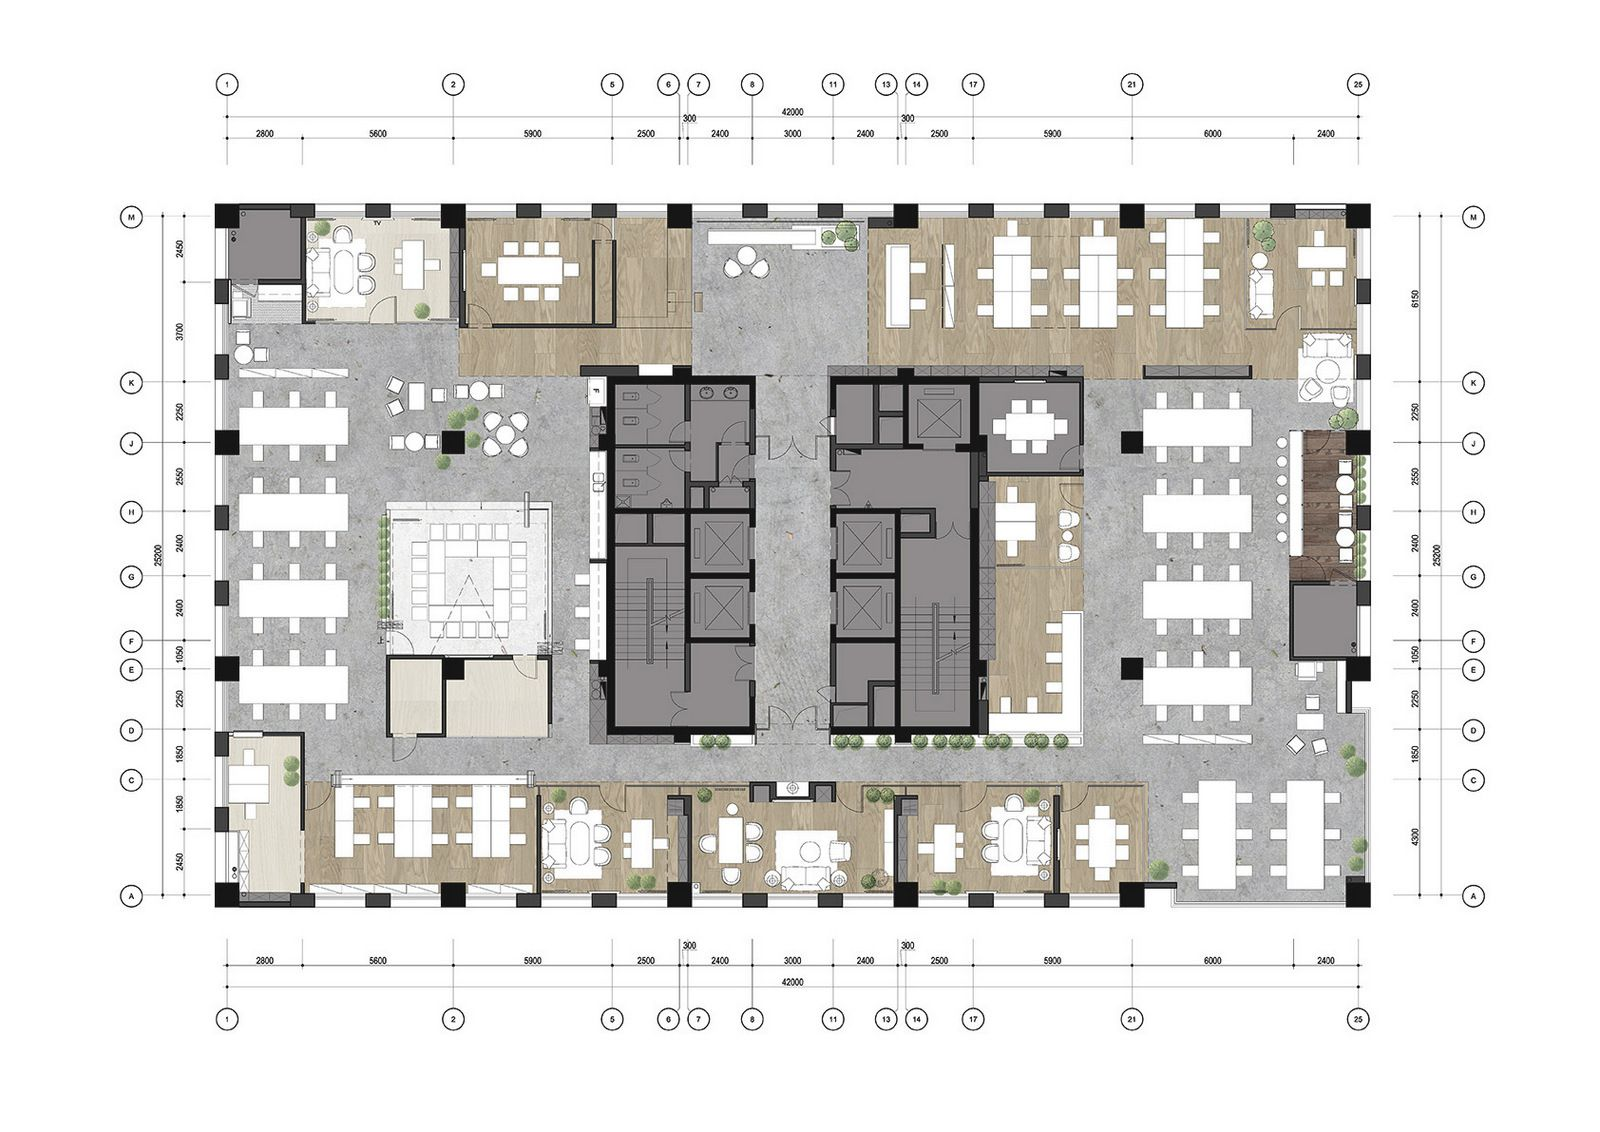 Qin Group Offices Chongqing Office Snapshots Office Building Plans Office Layout Office Floor Plan